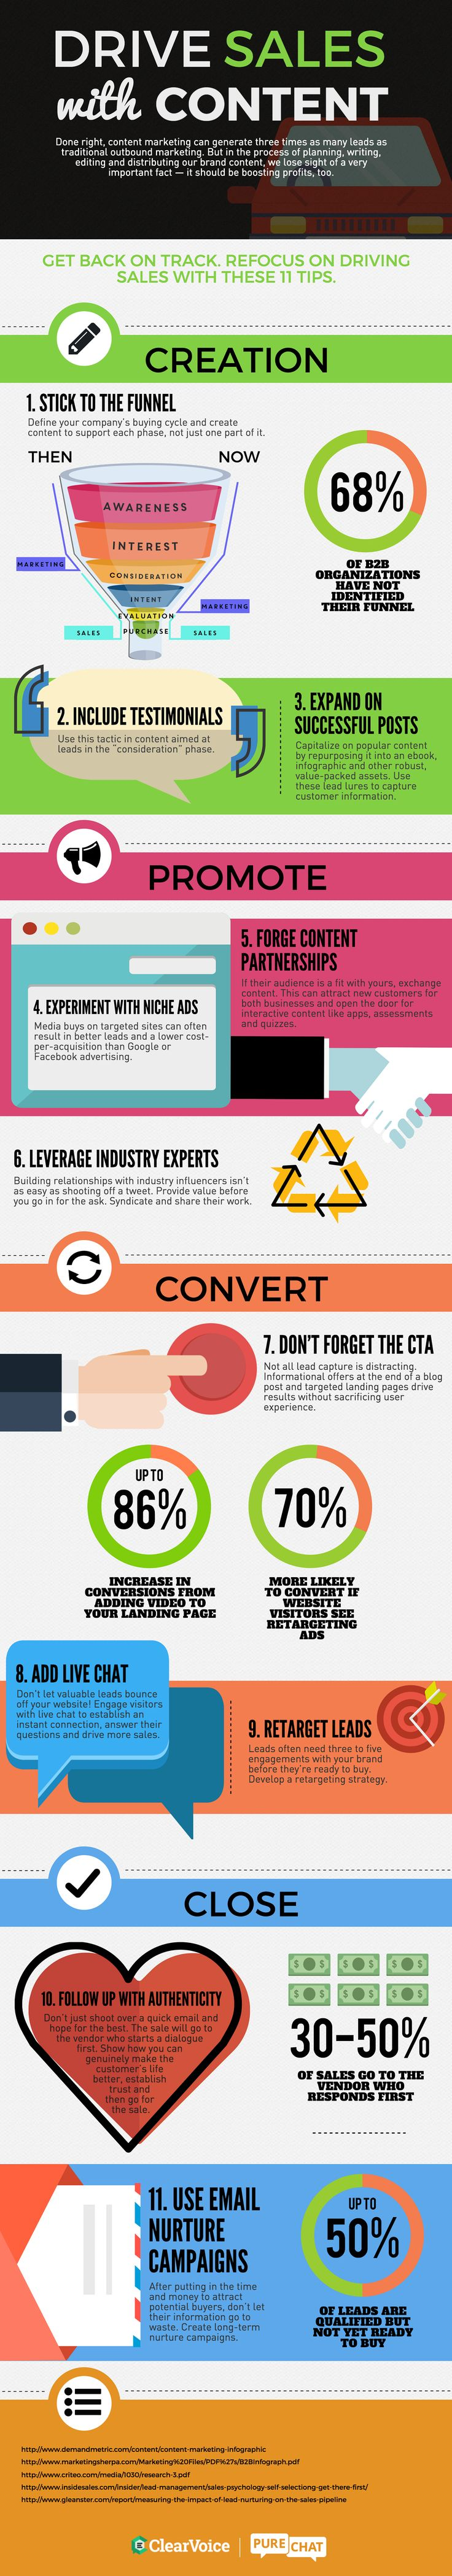 Drive Sales with Content Marketing #Infographic #ContentMarketing